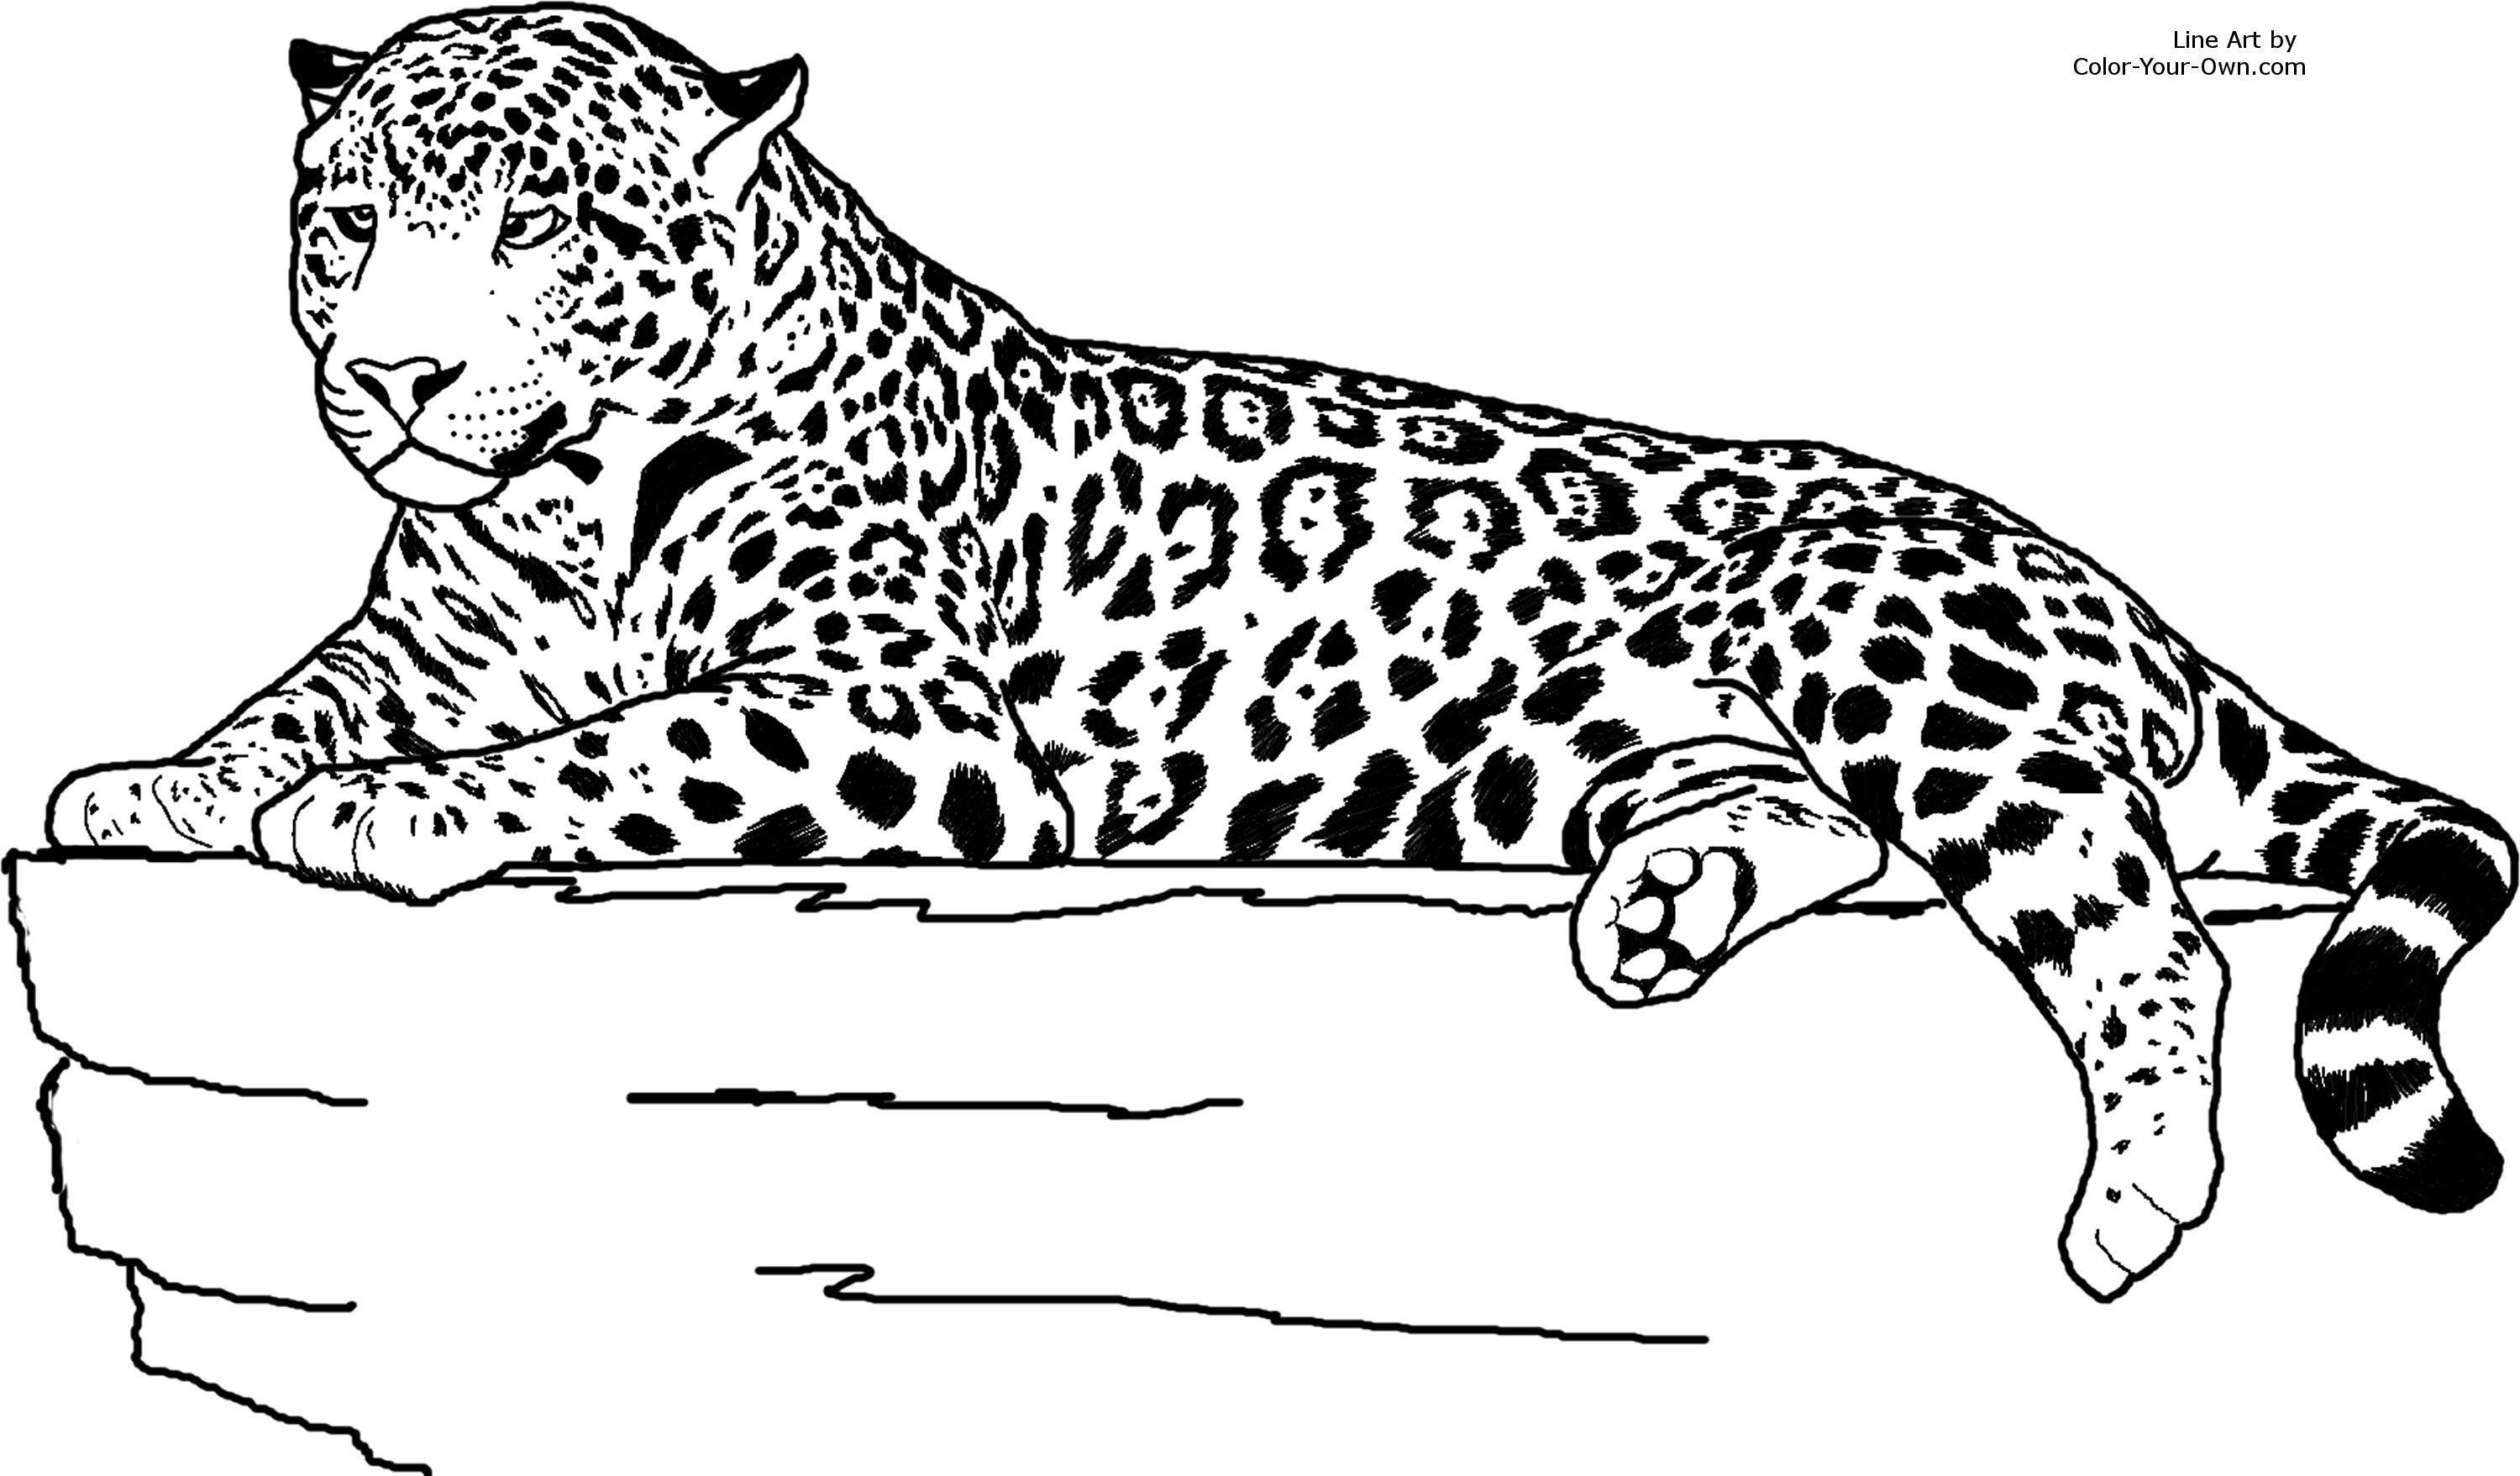 Realistic Jaguar Animal Coloring Pages Only Coloring Pages Farm Animal Coloring Pages Animal Coloring Books Zoo Animal Coloring Pages